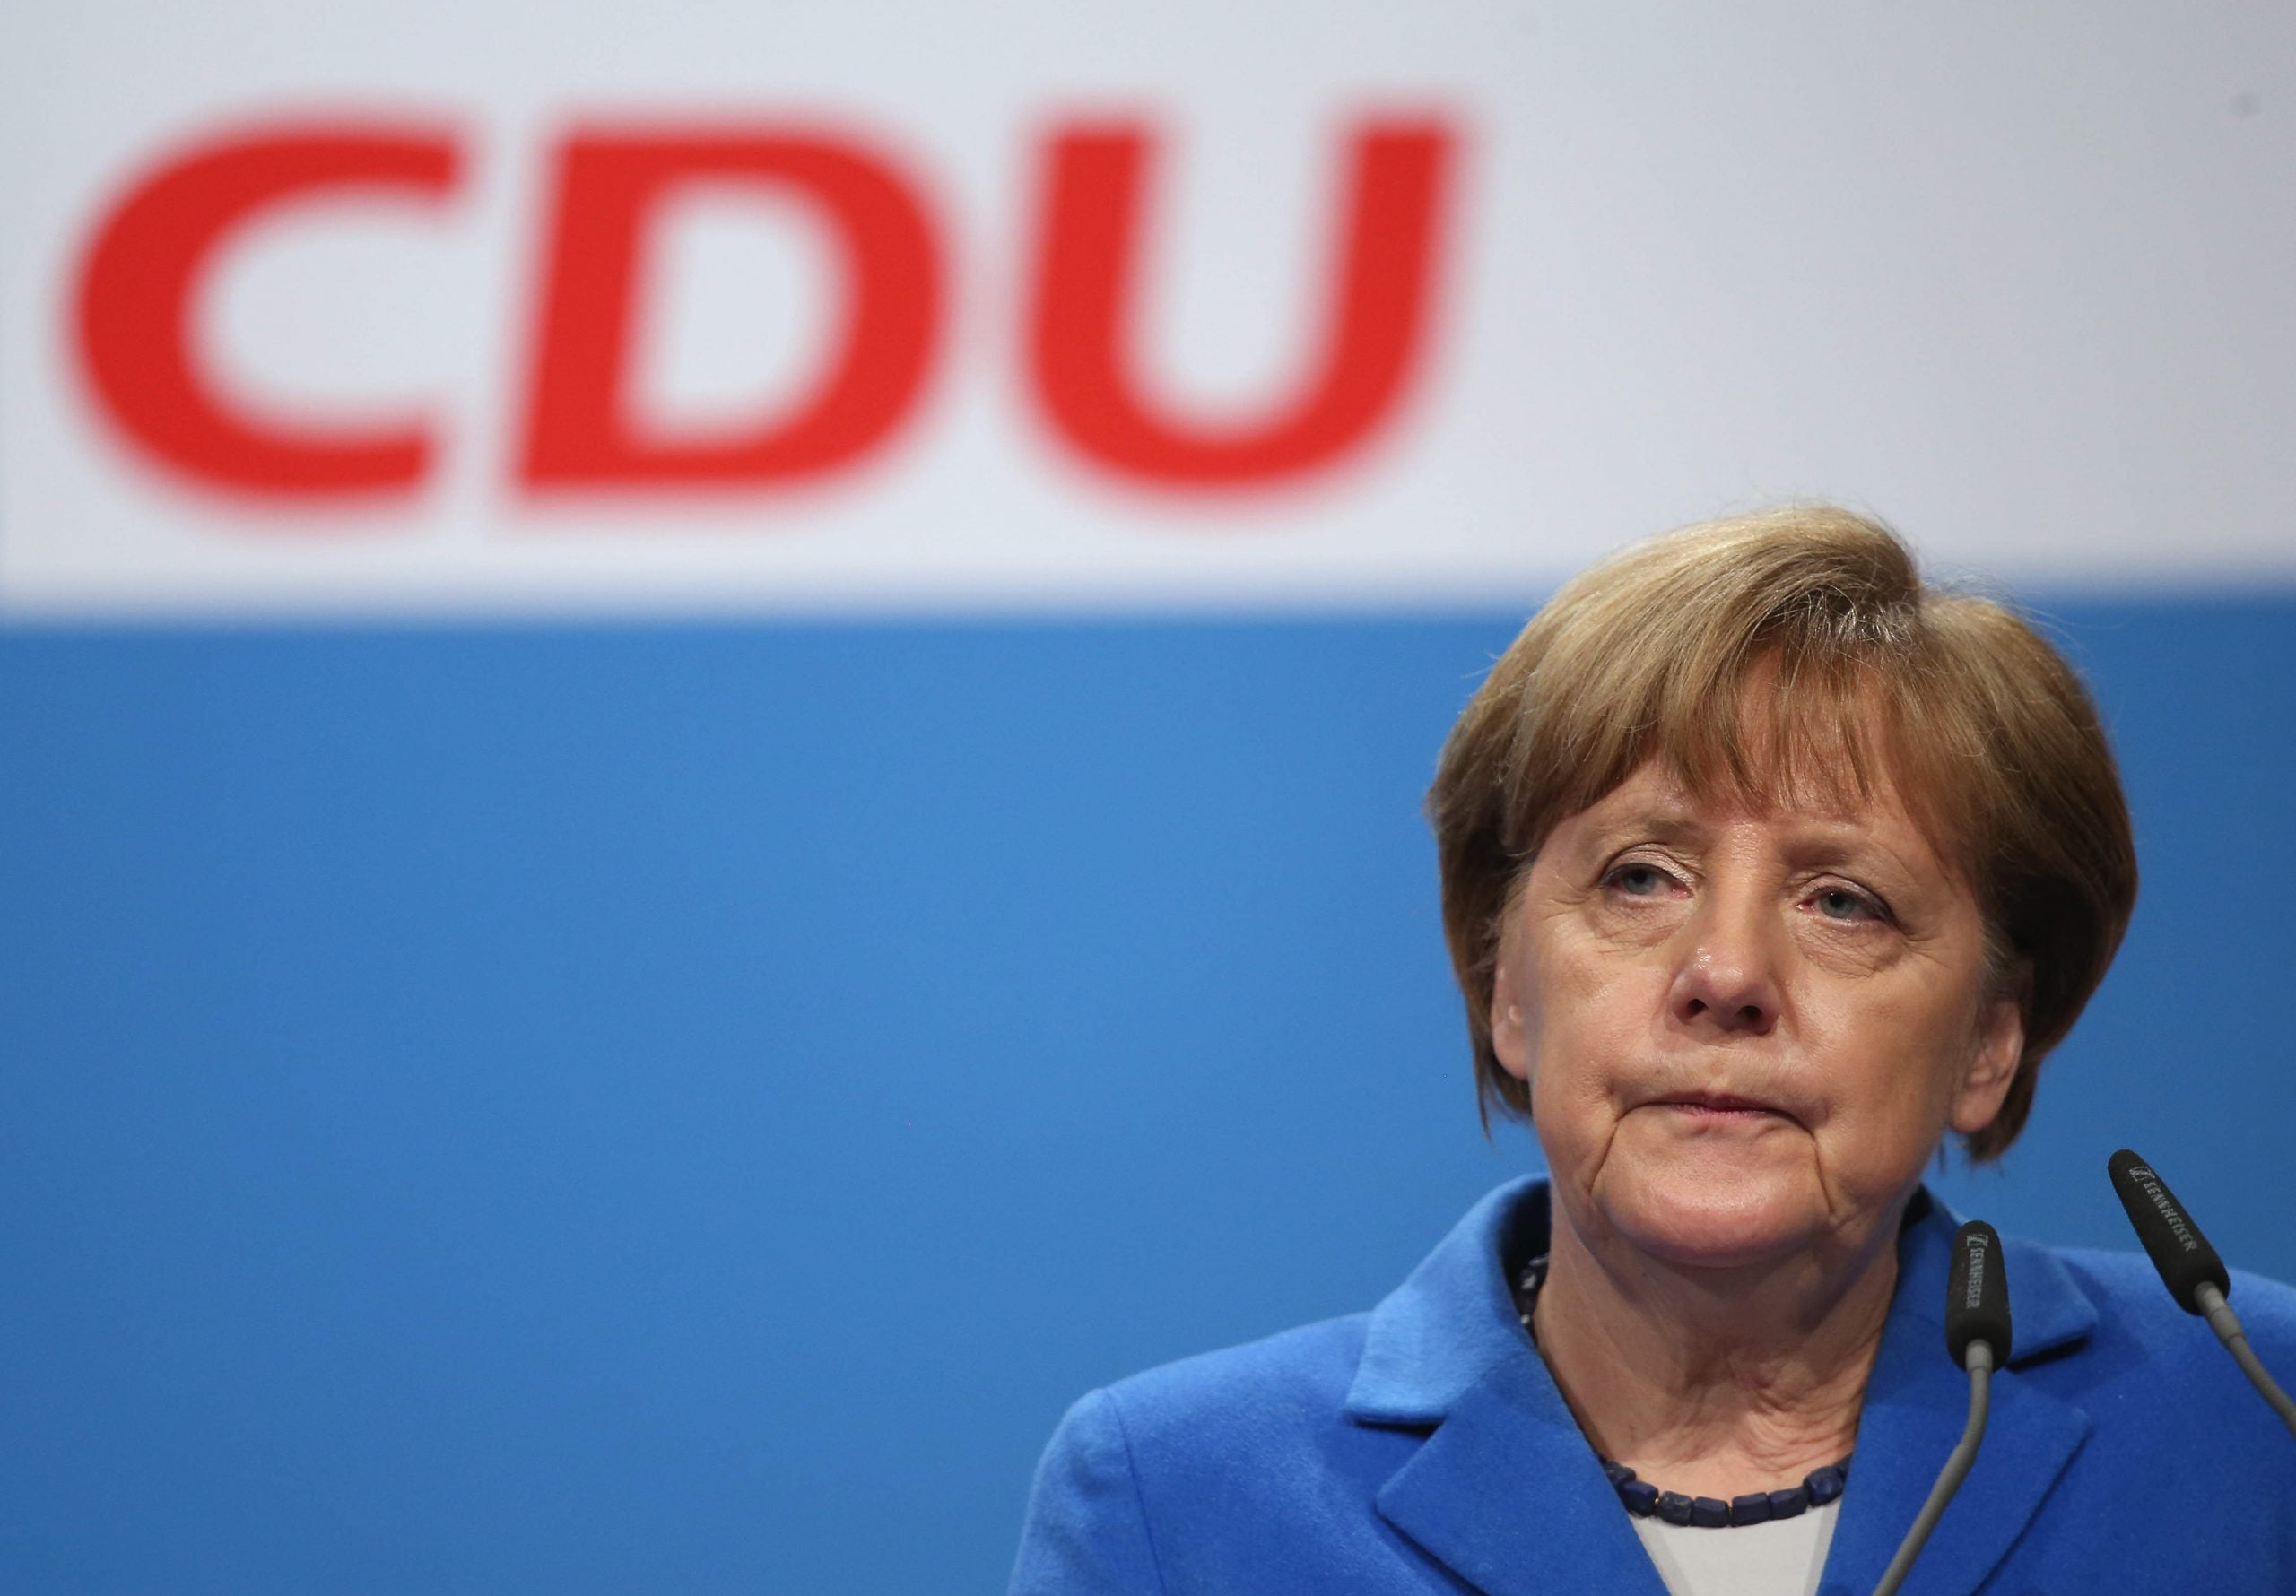 The end for Angela Merkel? It's more complicated than that